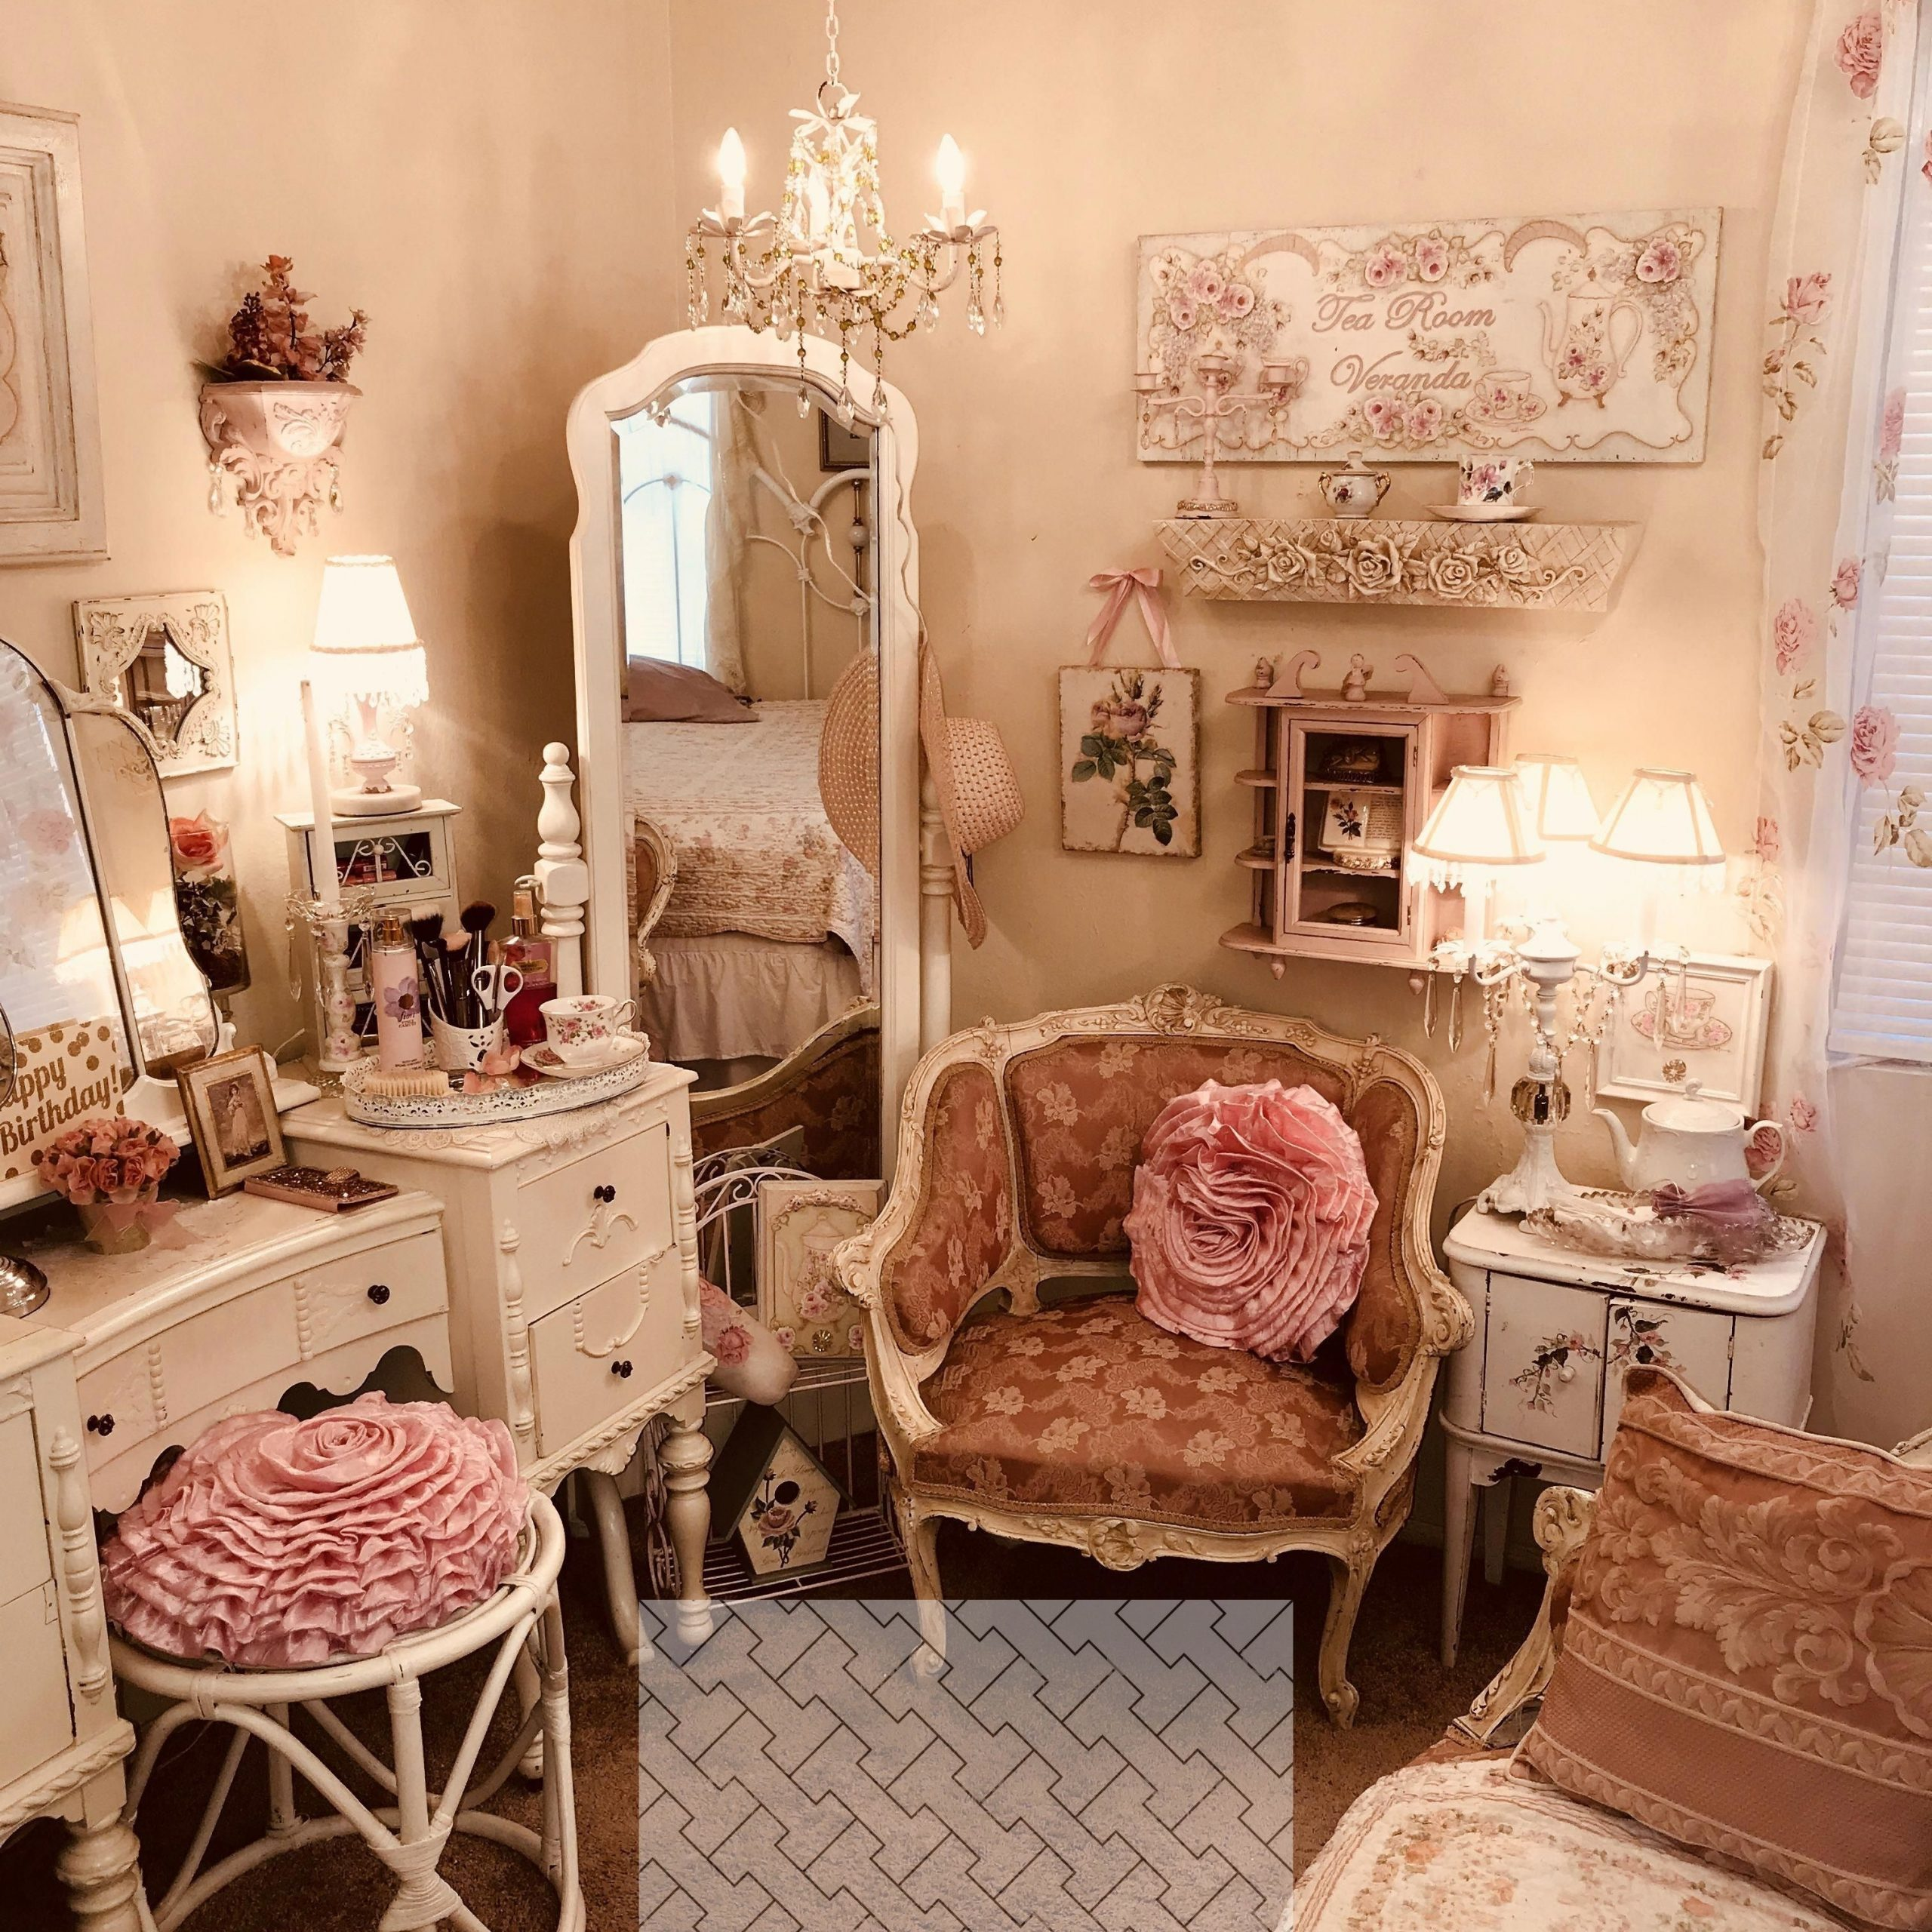 Prodigious Shabby Chic Room Ideas On Comely 14 Inexpensive Shabby Chic Interior Farm Tables Ideas On Shabby Chic Room Ideas